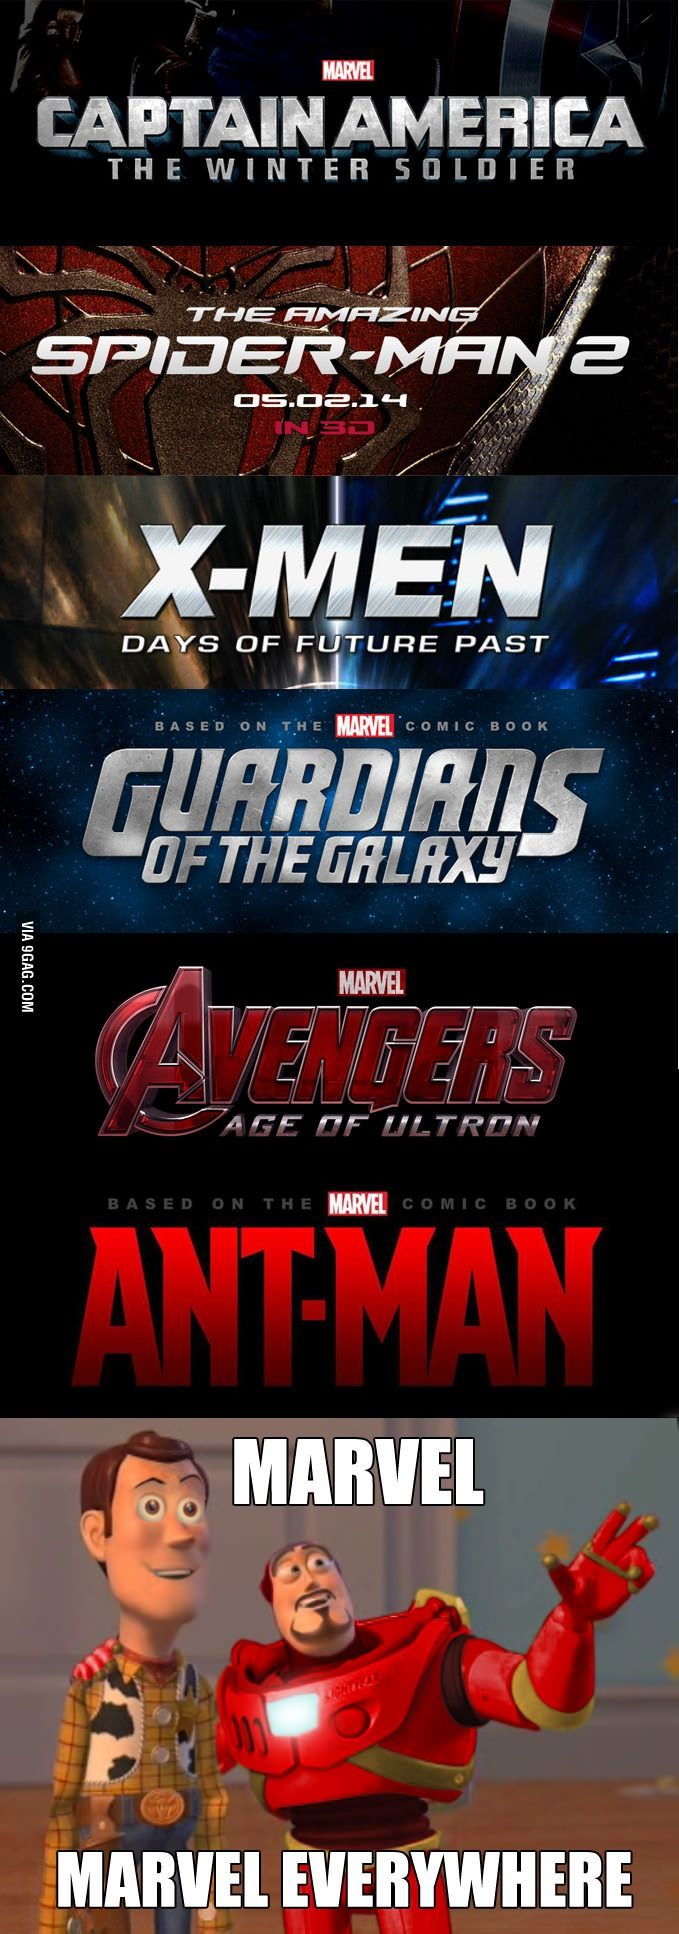 When I see the upcoming movies 2014/2015